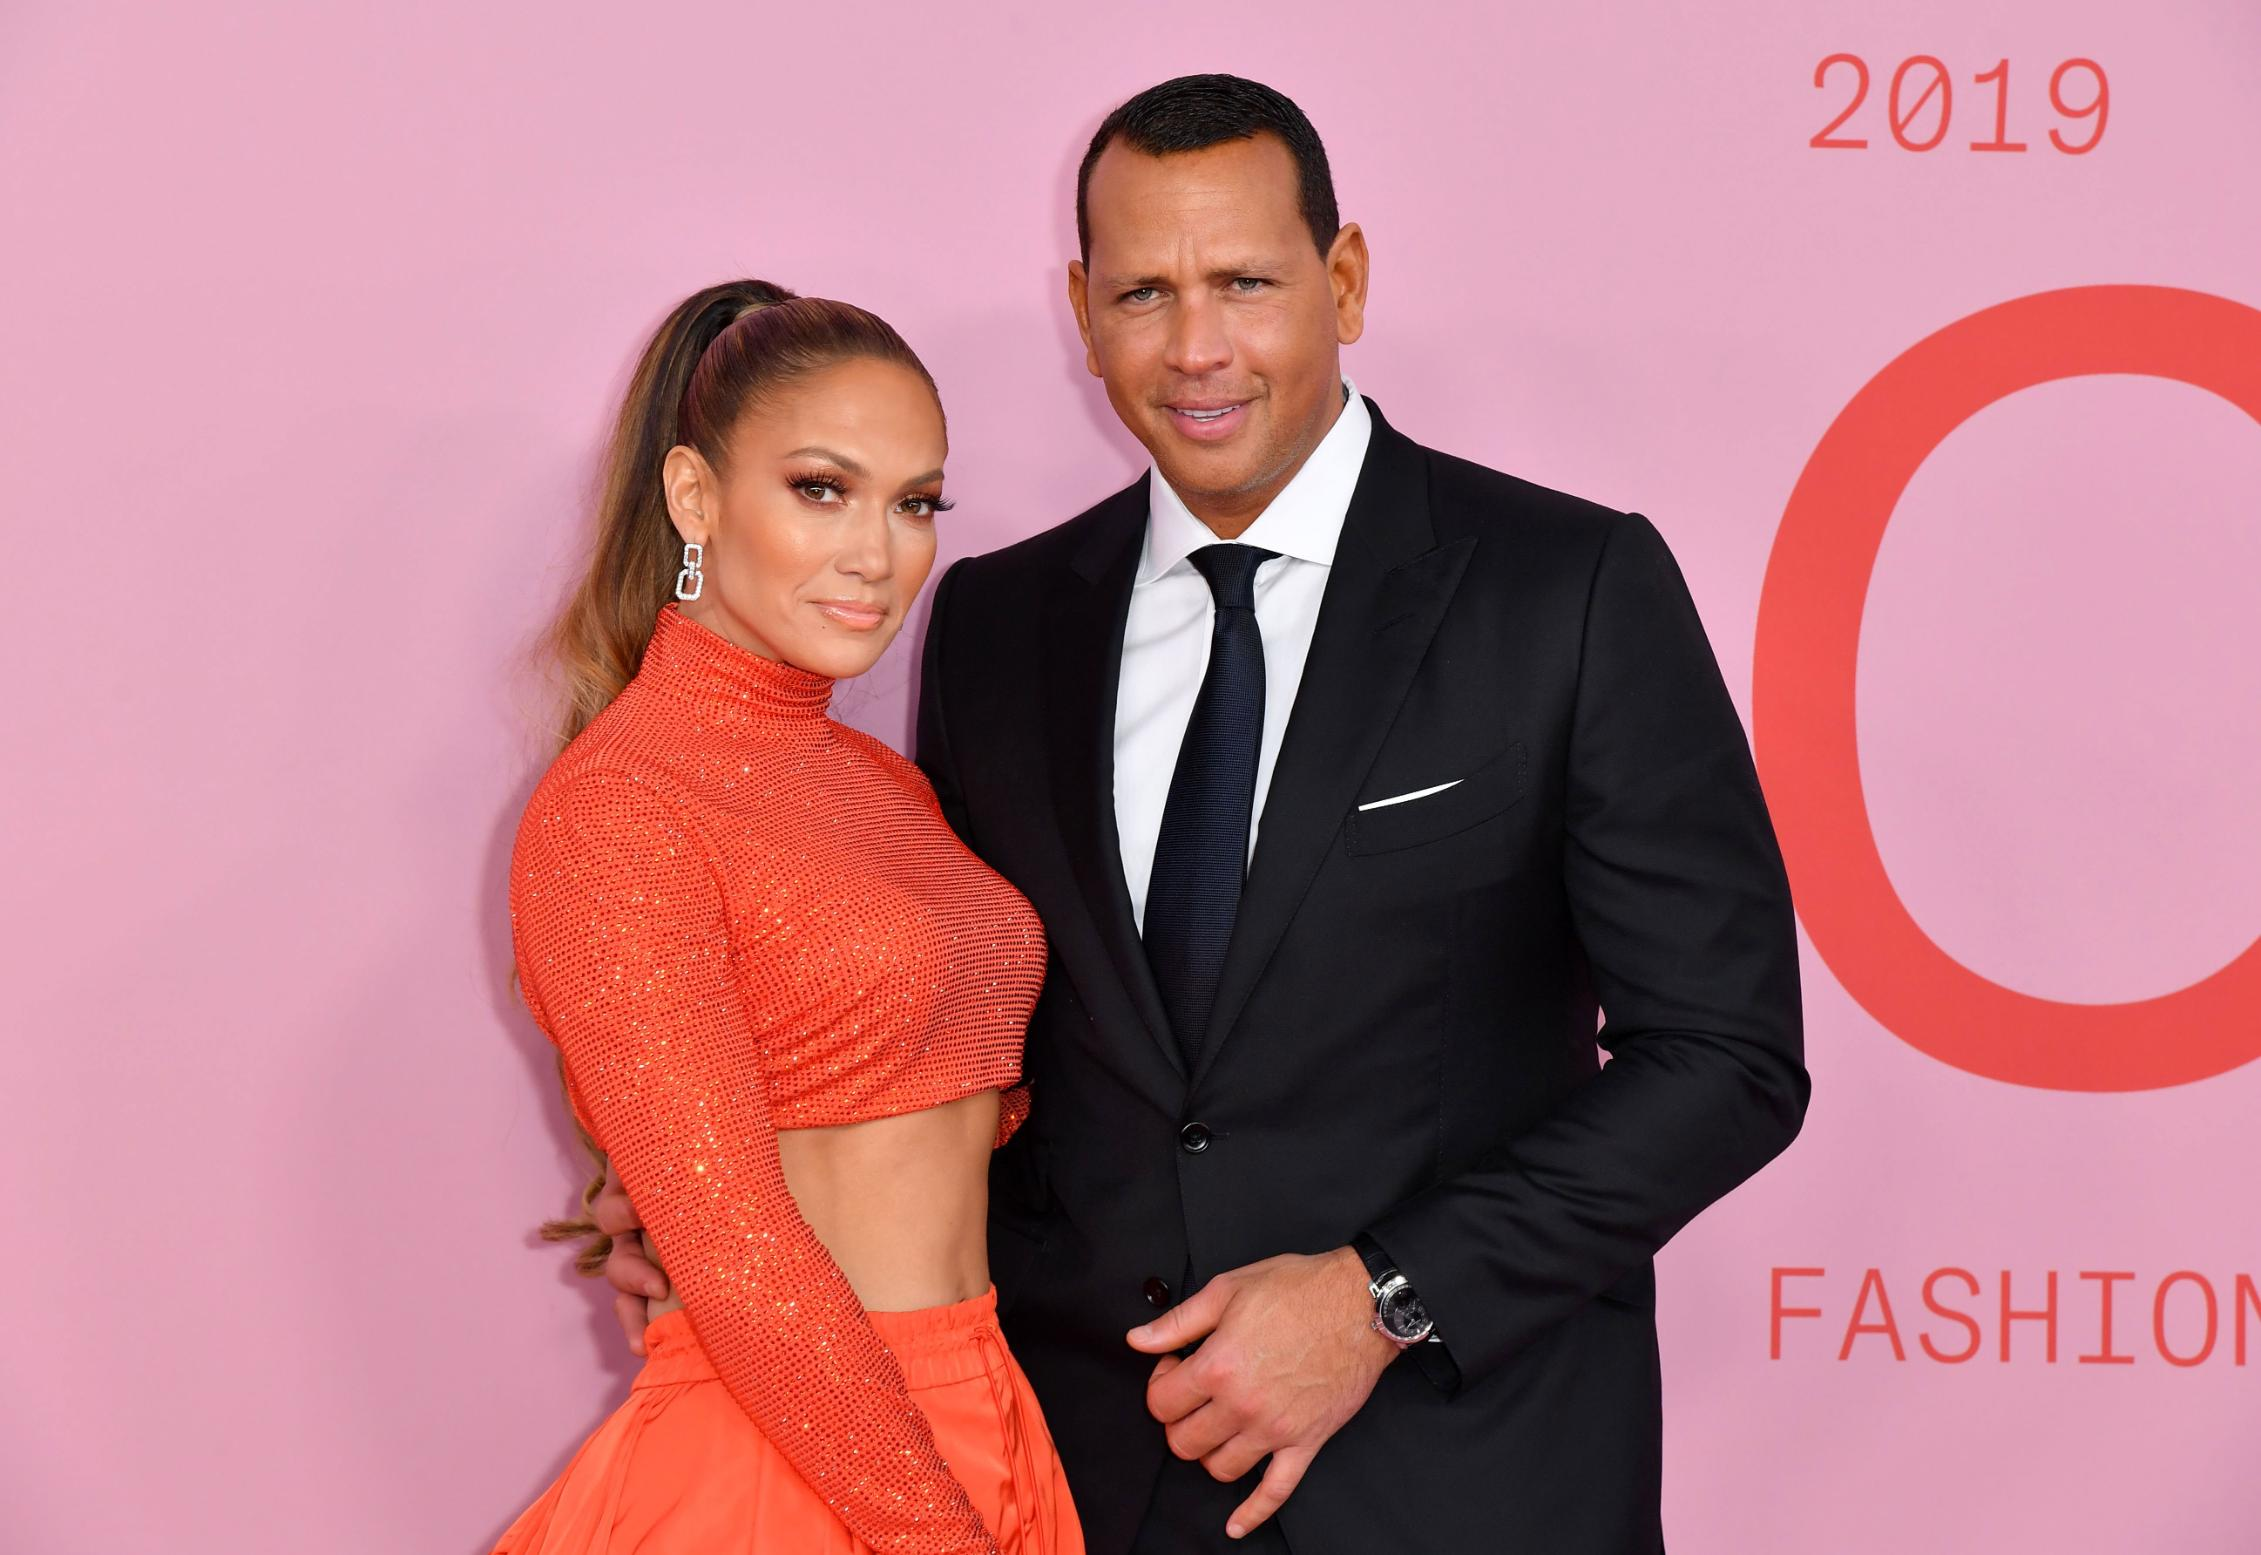 Jennifer Lopez and Alex Rodriguez announce breakup in new statement